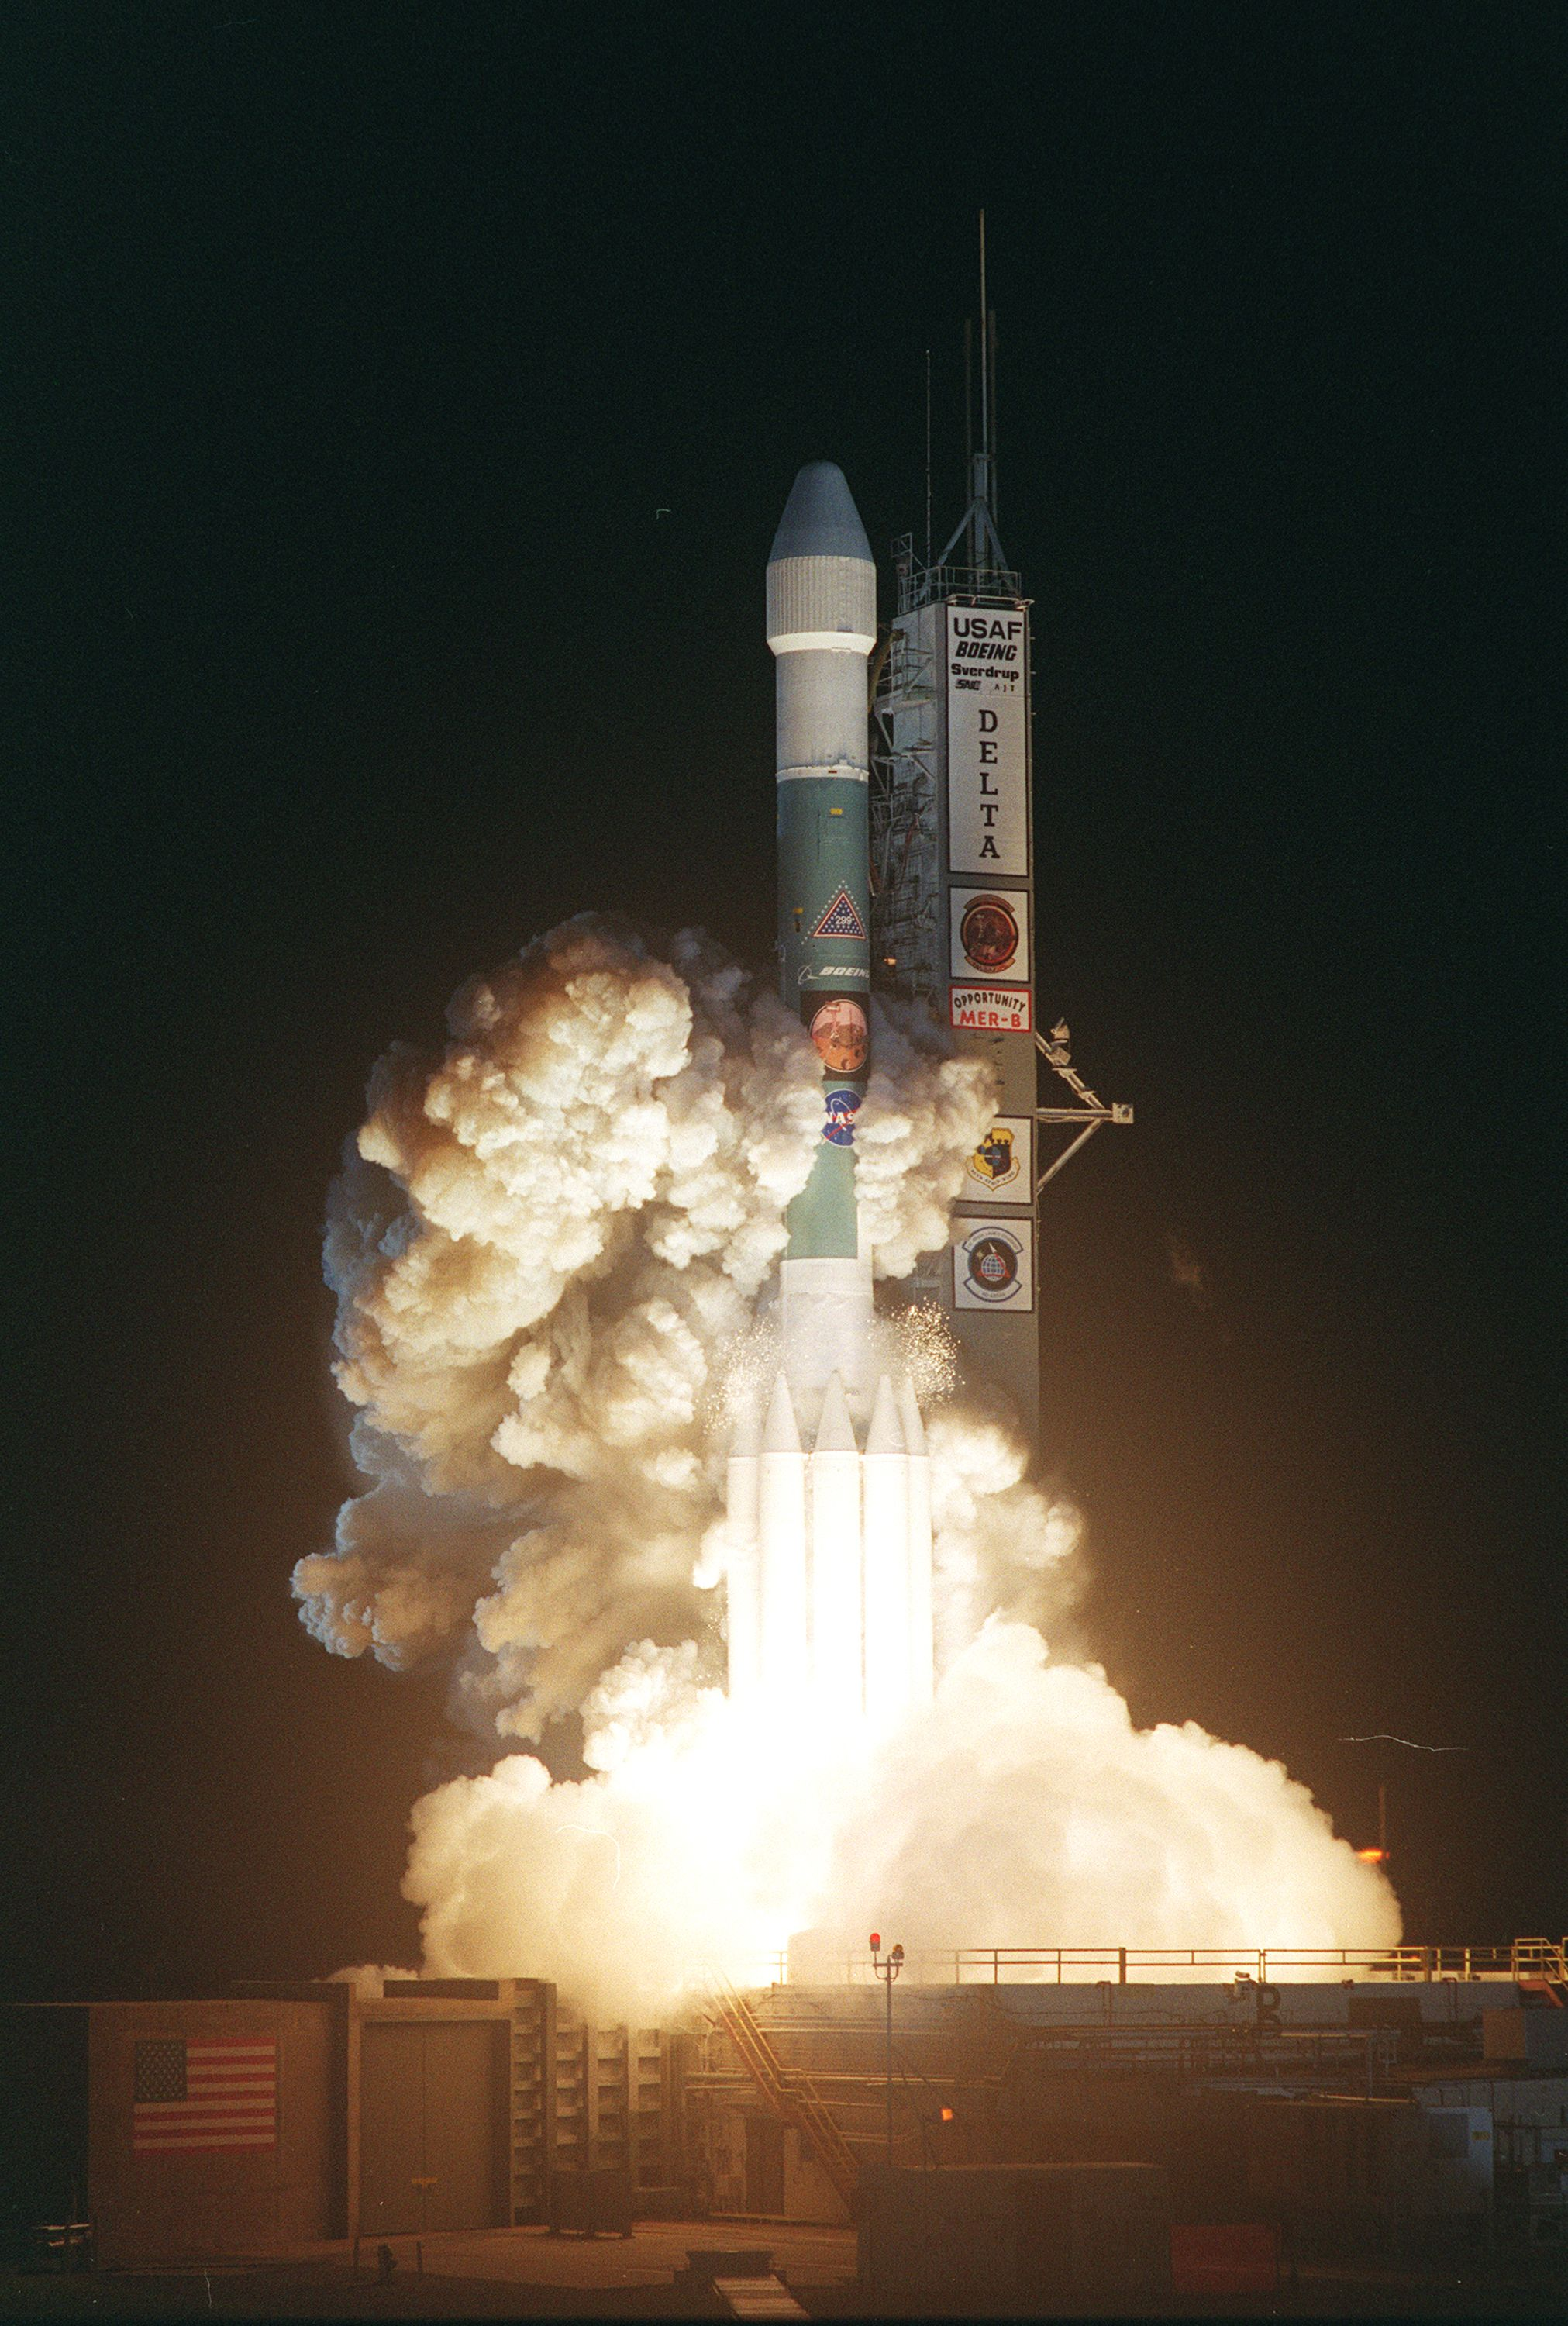 On July 7, 2003, NASA launched its second Mars Exploration Rover, Opportunity, aboard a Delta II launch vehicle.